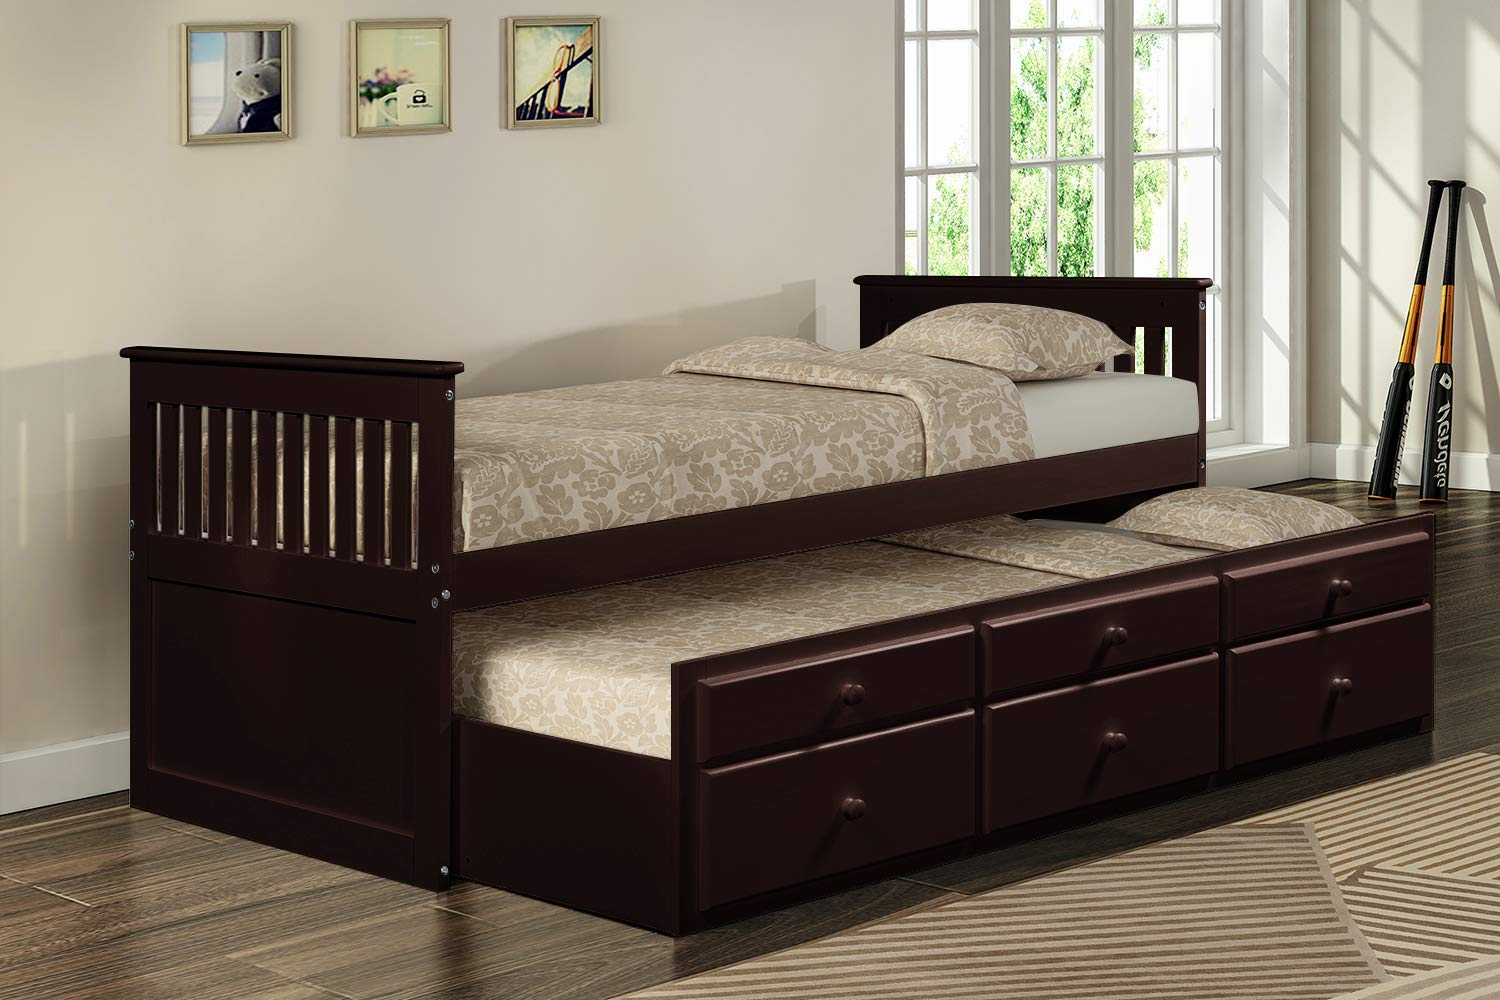 Captain s Bed Twin Daybed with Trundle Bed and Storage Drawers, White Espresso